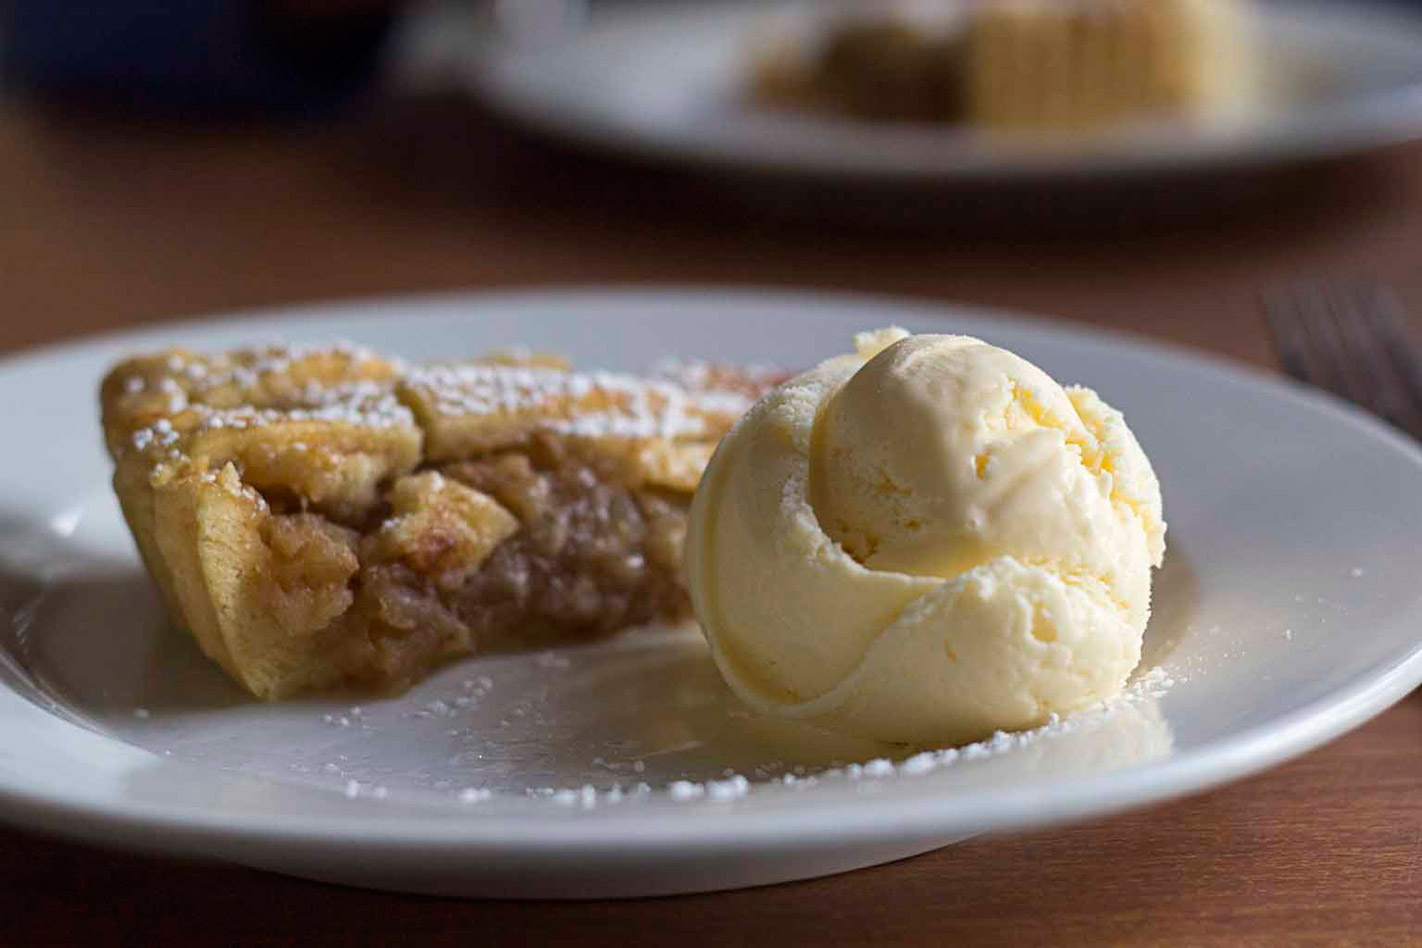 Bells' Apple pie and icecream